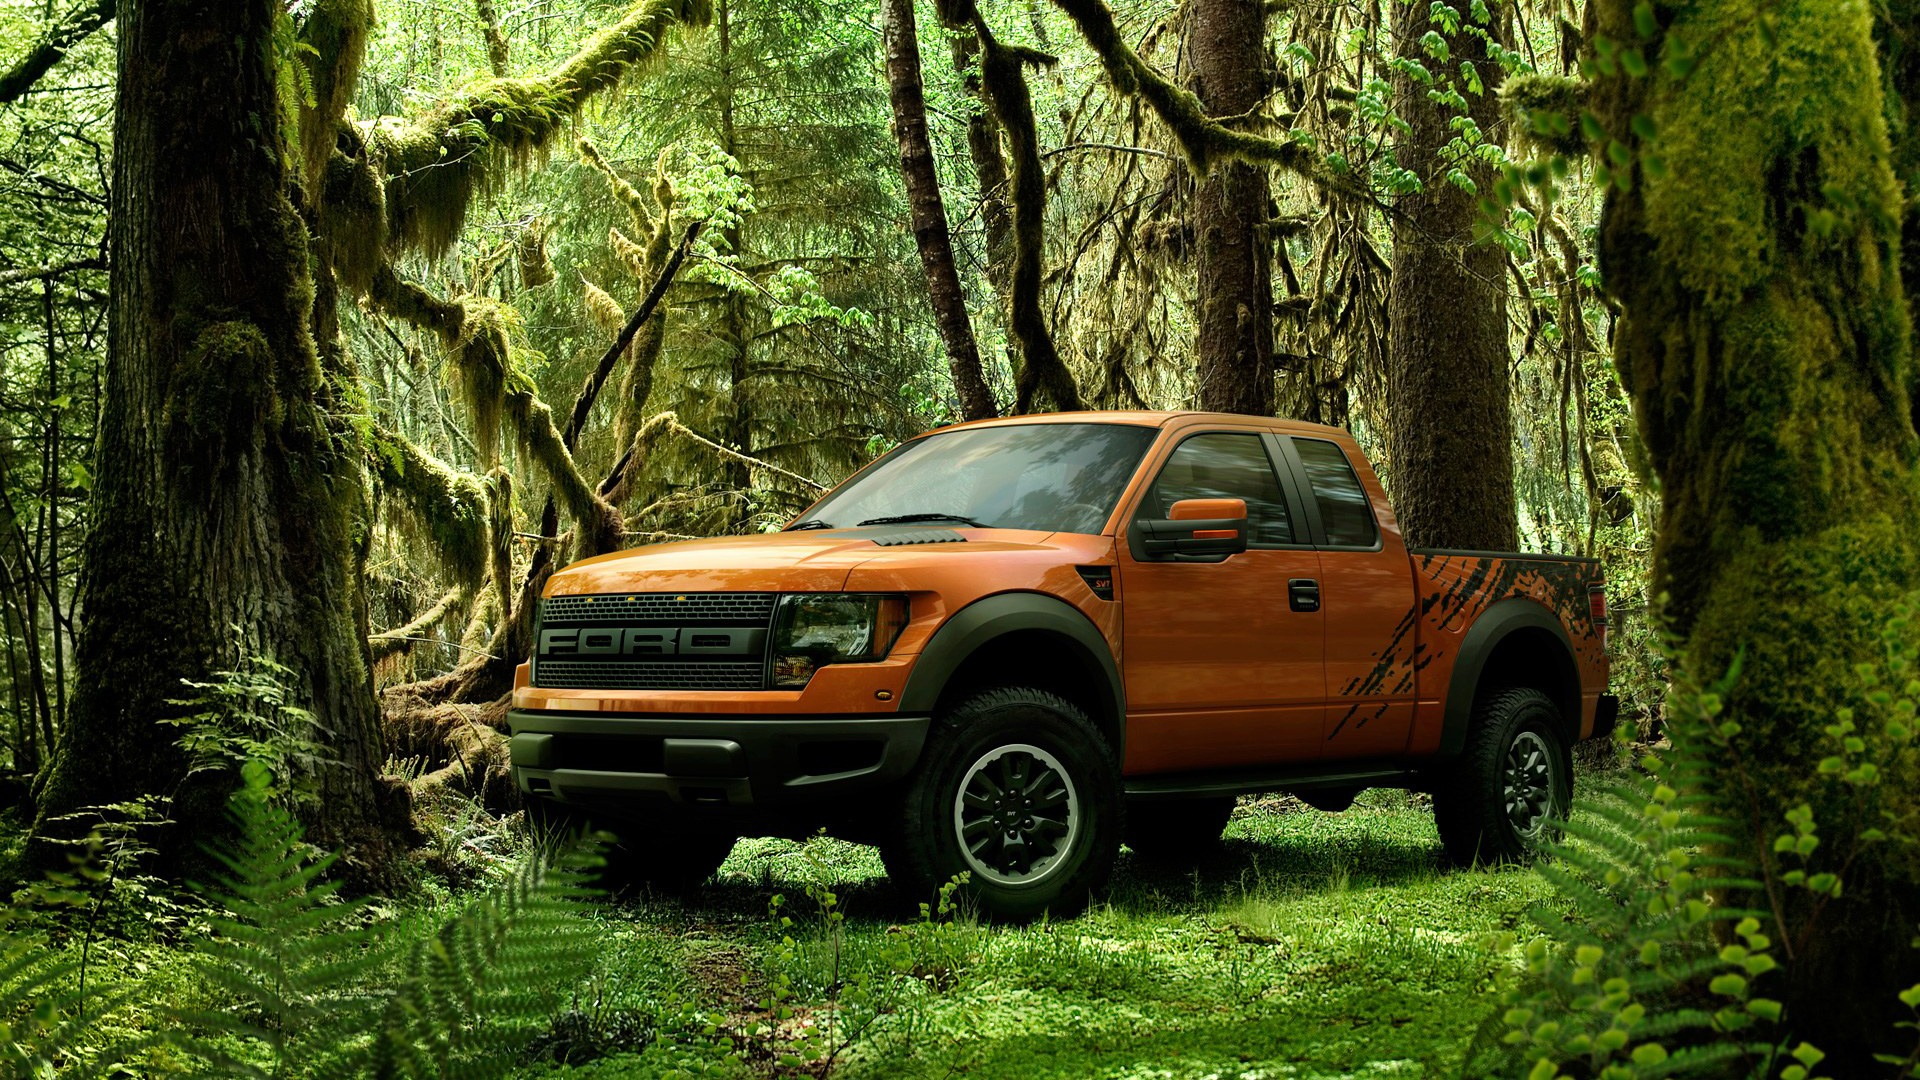 Ford F 150 Svt Raptor Wallpaper Ford Cars Wallpapers In Jpg Format